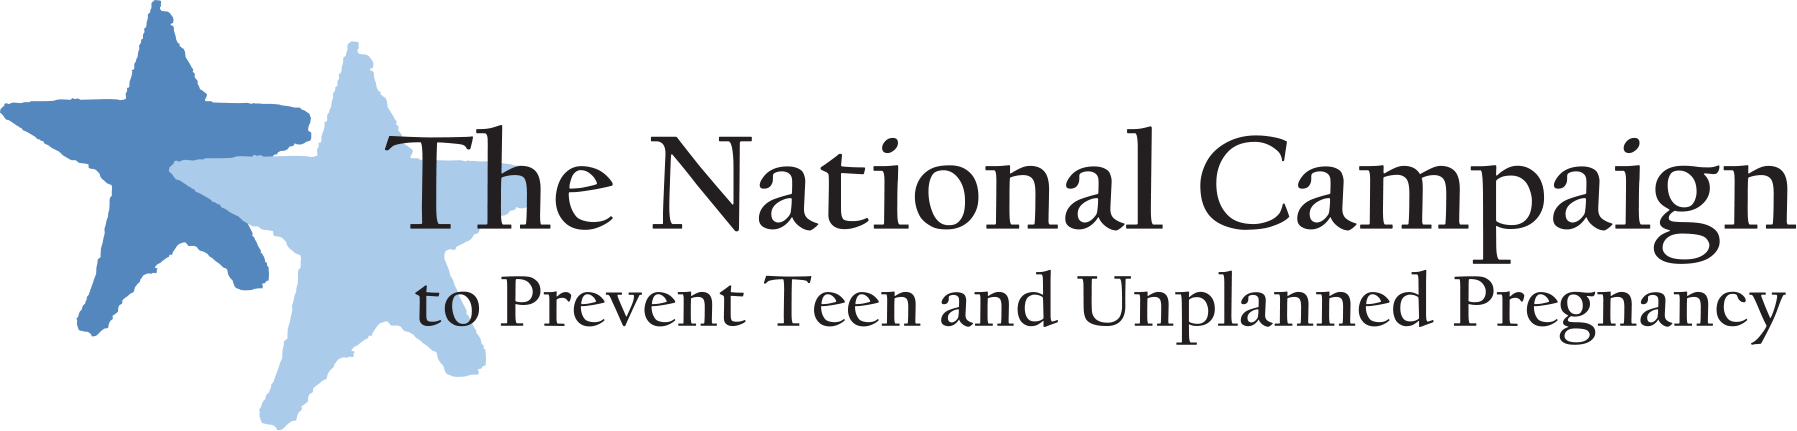 The National Campaign to Prevent Teen and Unplanned Pregnancy Names... |  Newswire